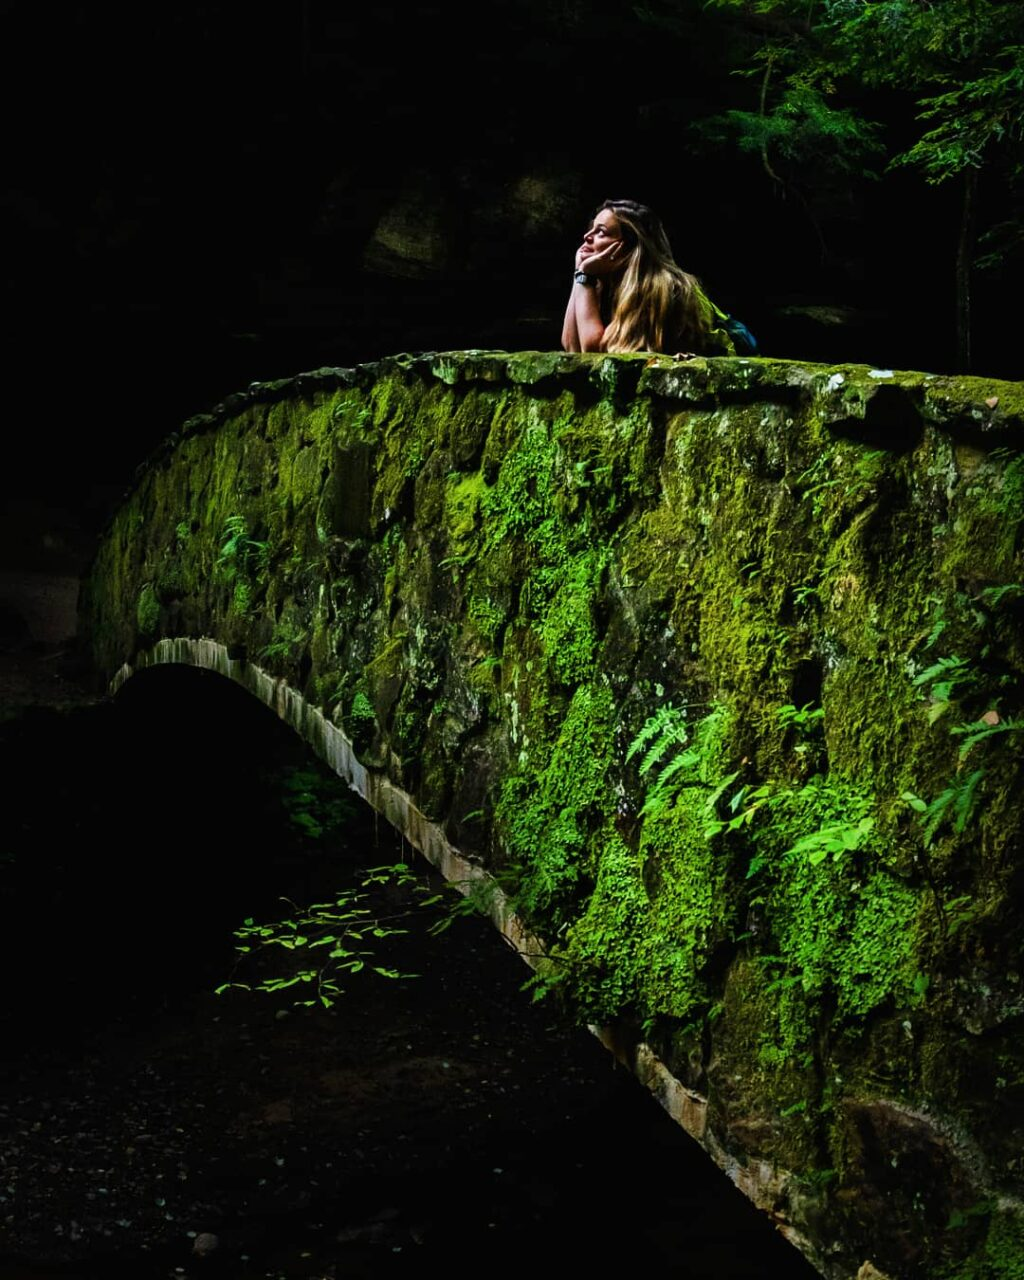 Woman looking longingly with her head in her hands on a stone bridge.